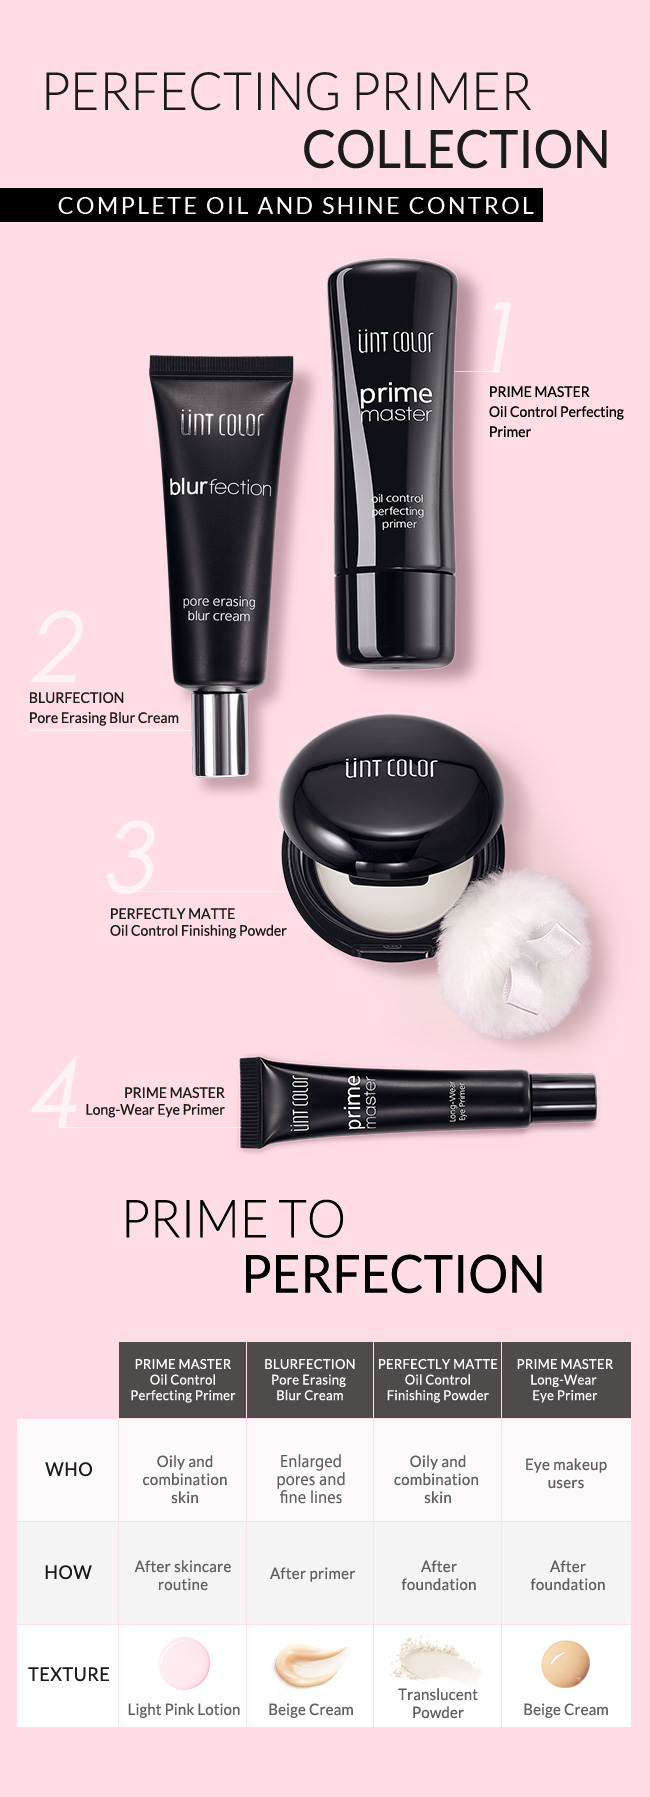 PERFECTING PRIMER COLLECTION